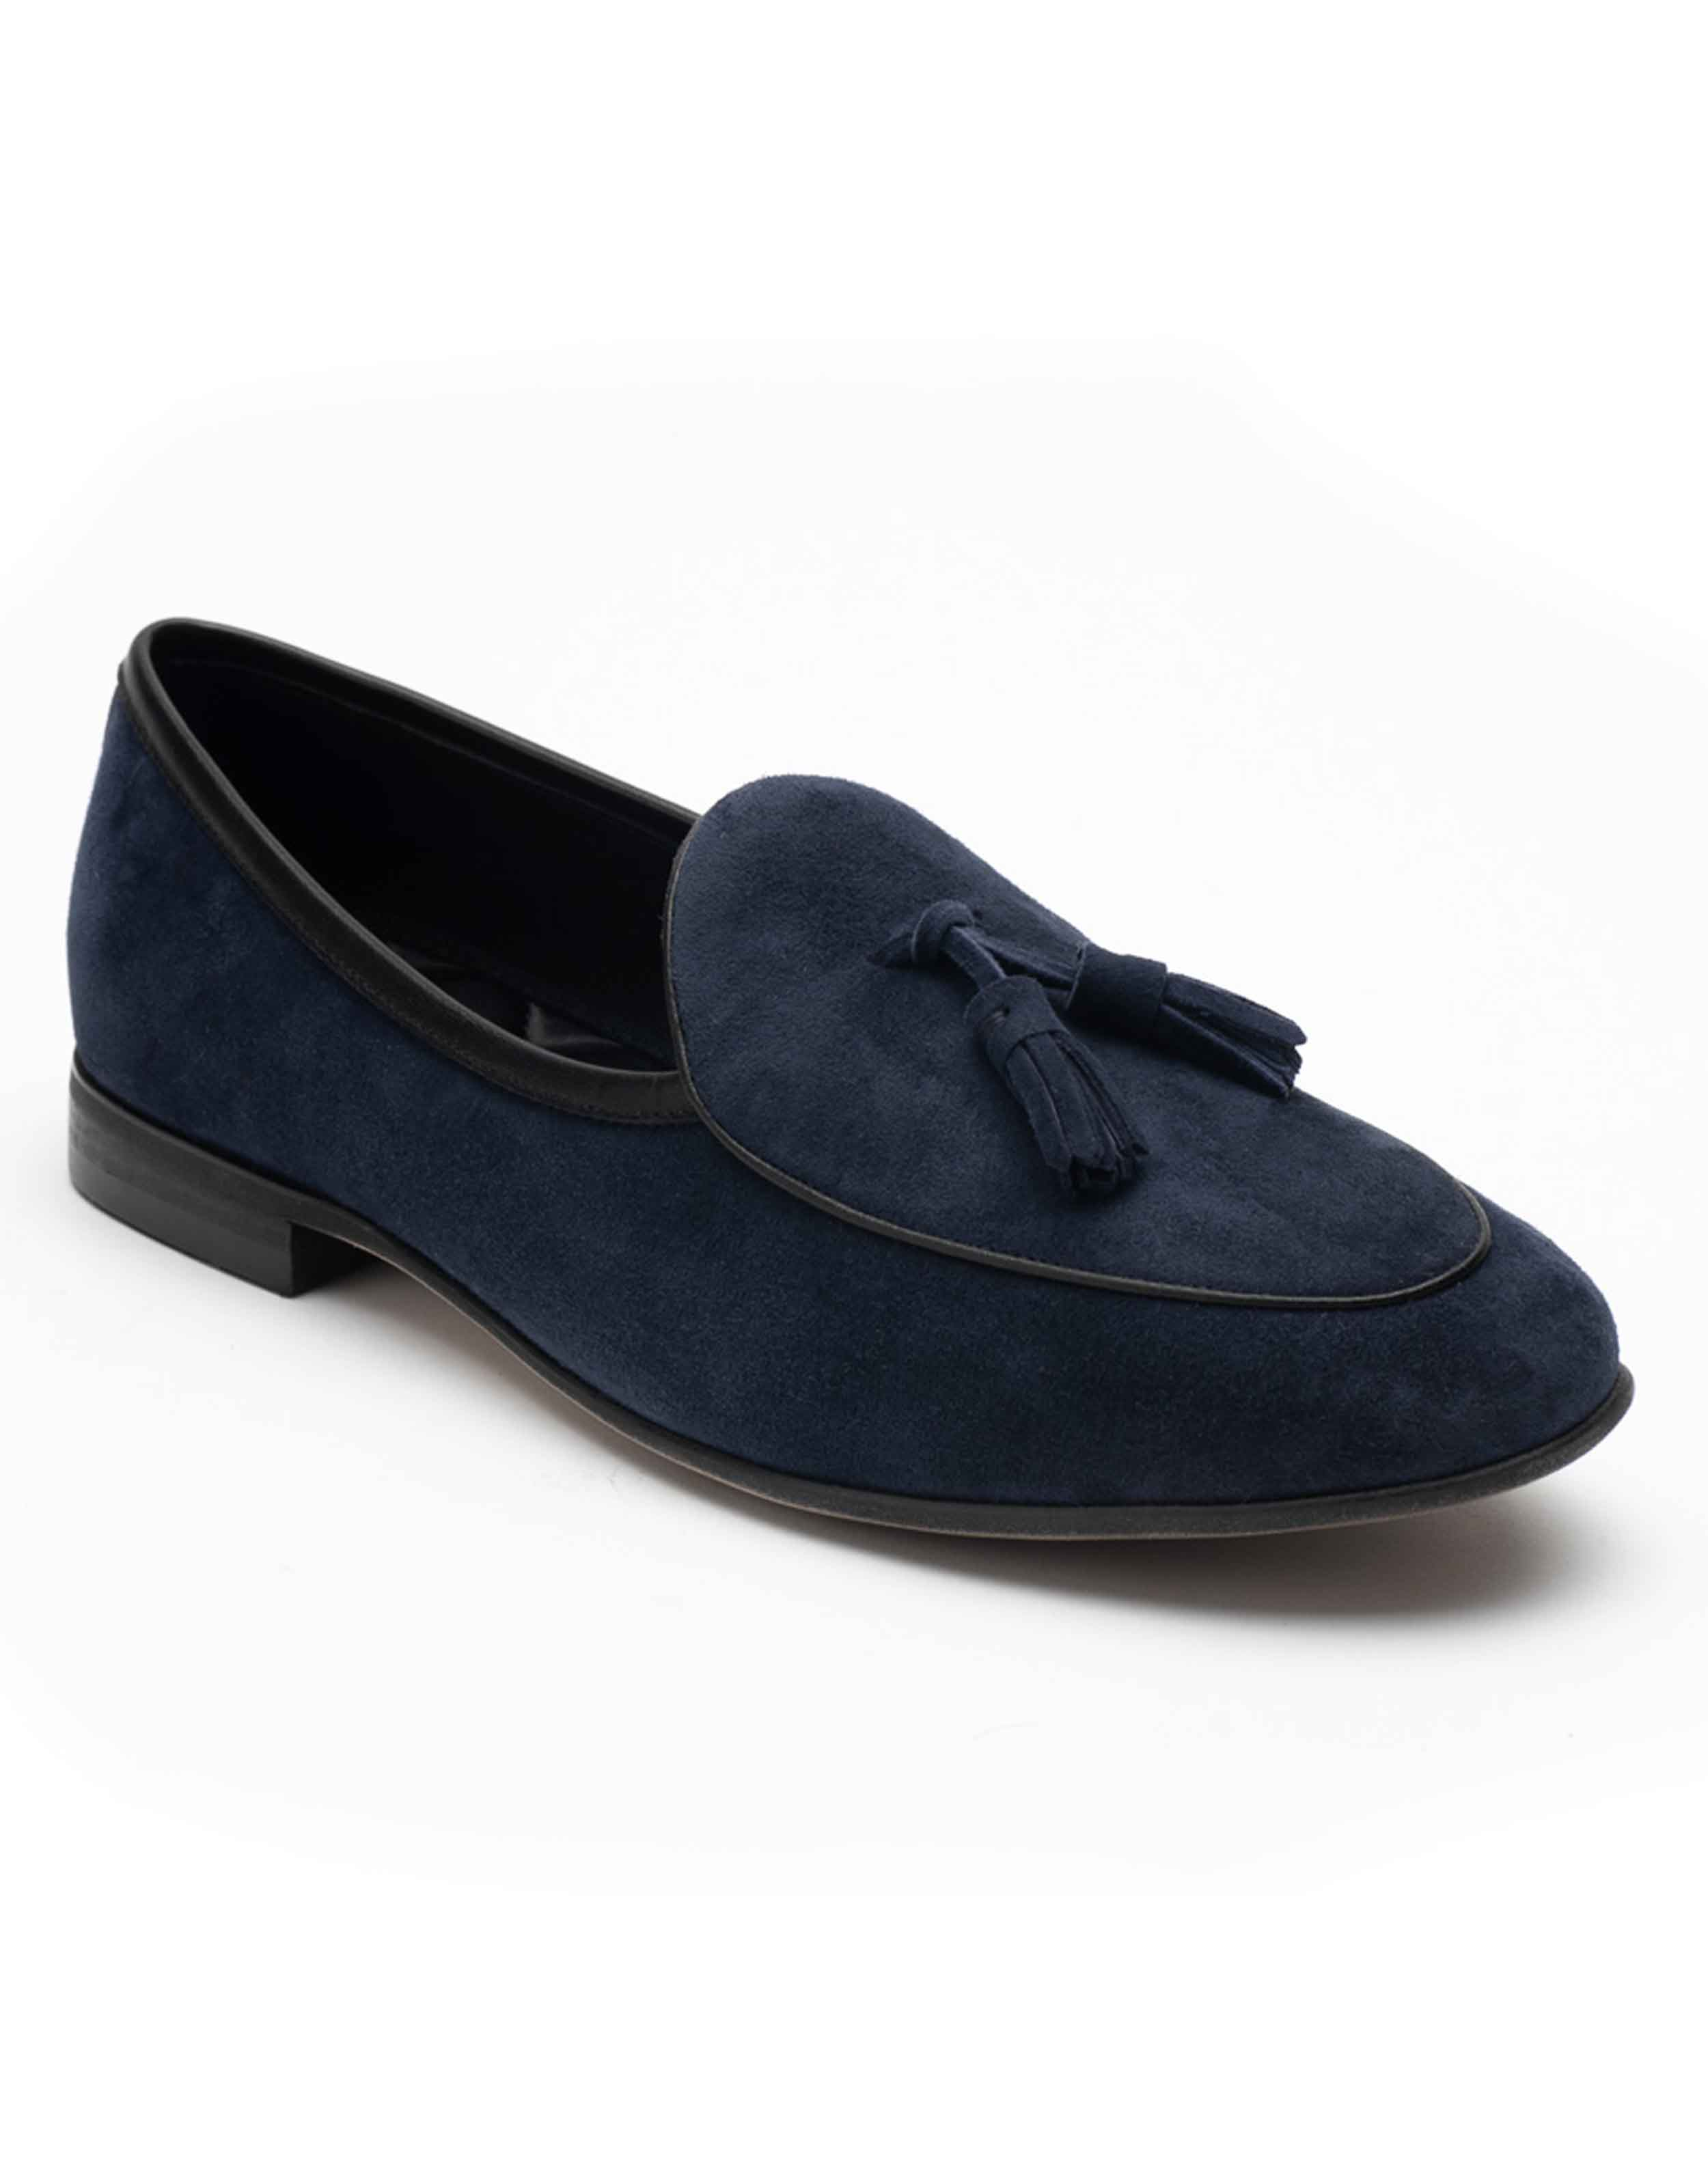 Heel _ Buckle London-HBDARM074-Sliced Navy Suede Loafers-Navy-2